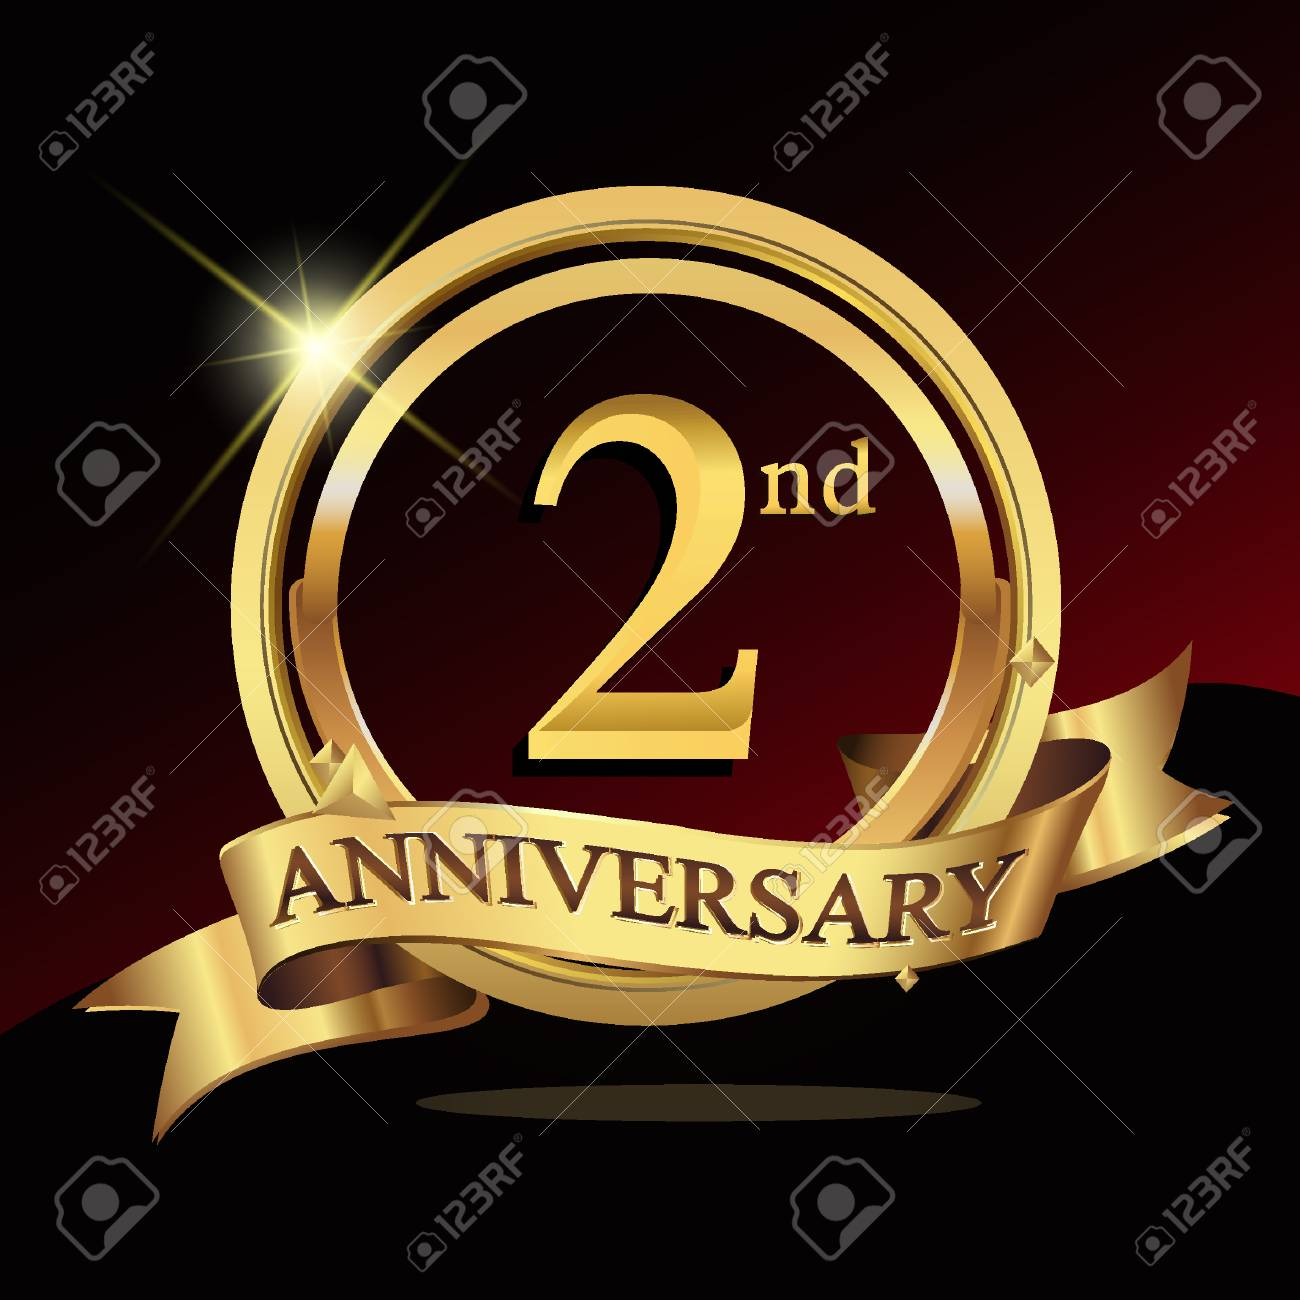 2nd Years Golden Anniversary Logo Celebration With Ring And Ribbon Royalty Free Cliparts Vectors And Stock Illustration Image 72308454,Types Of Hamsters Breed